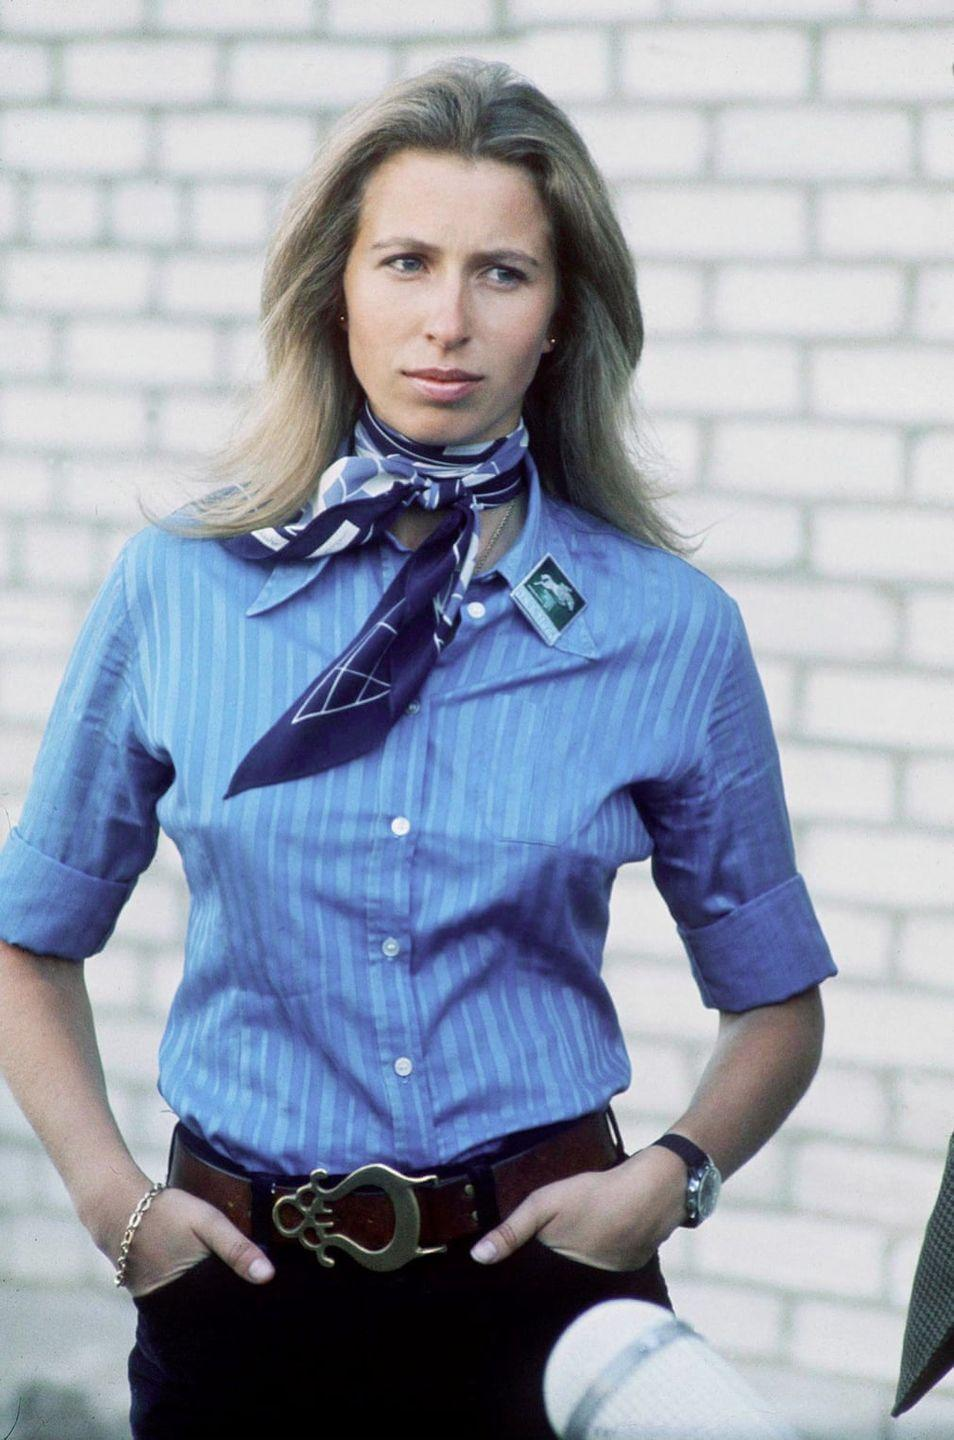 <p>Pictured in 1973, wearing a neck-tie paired with a classic blue shirt and elegant jewellery.</p>